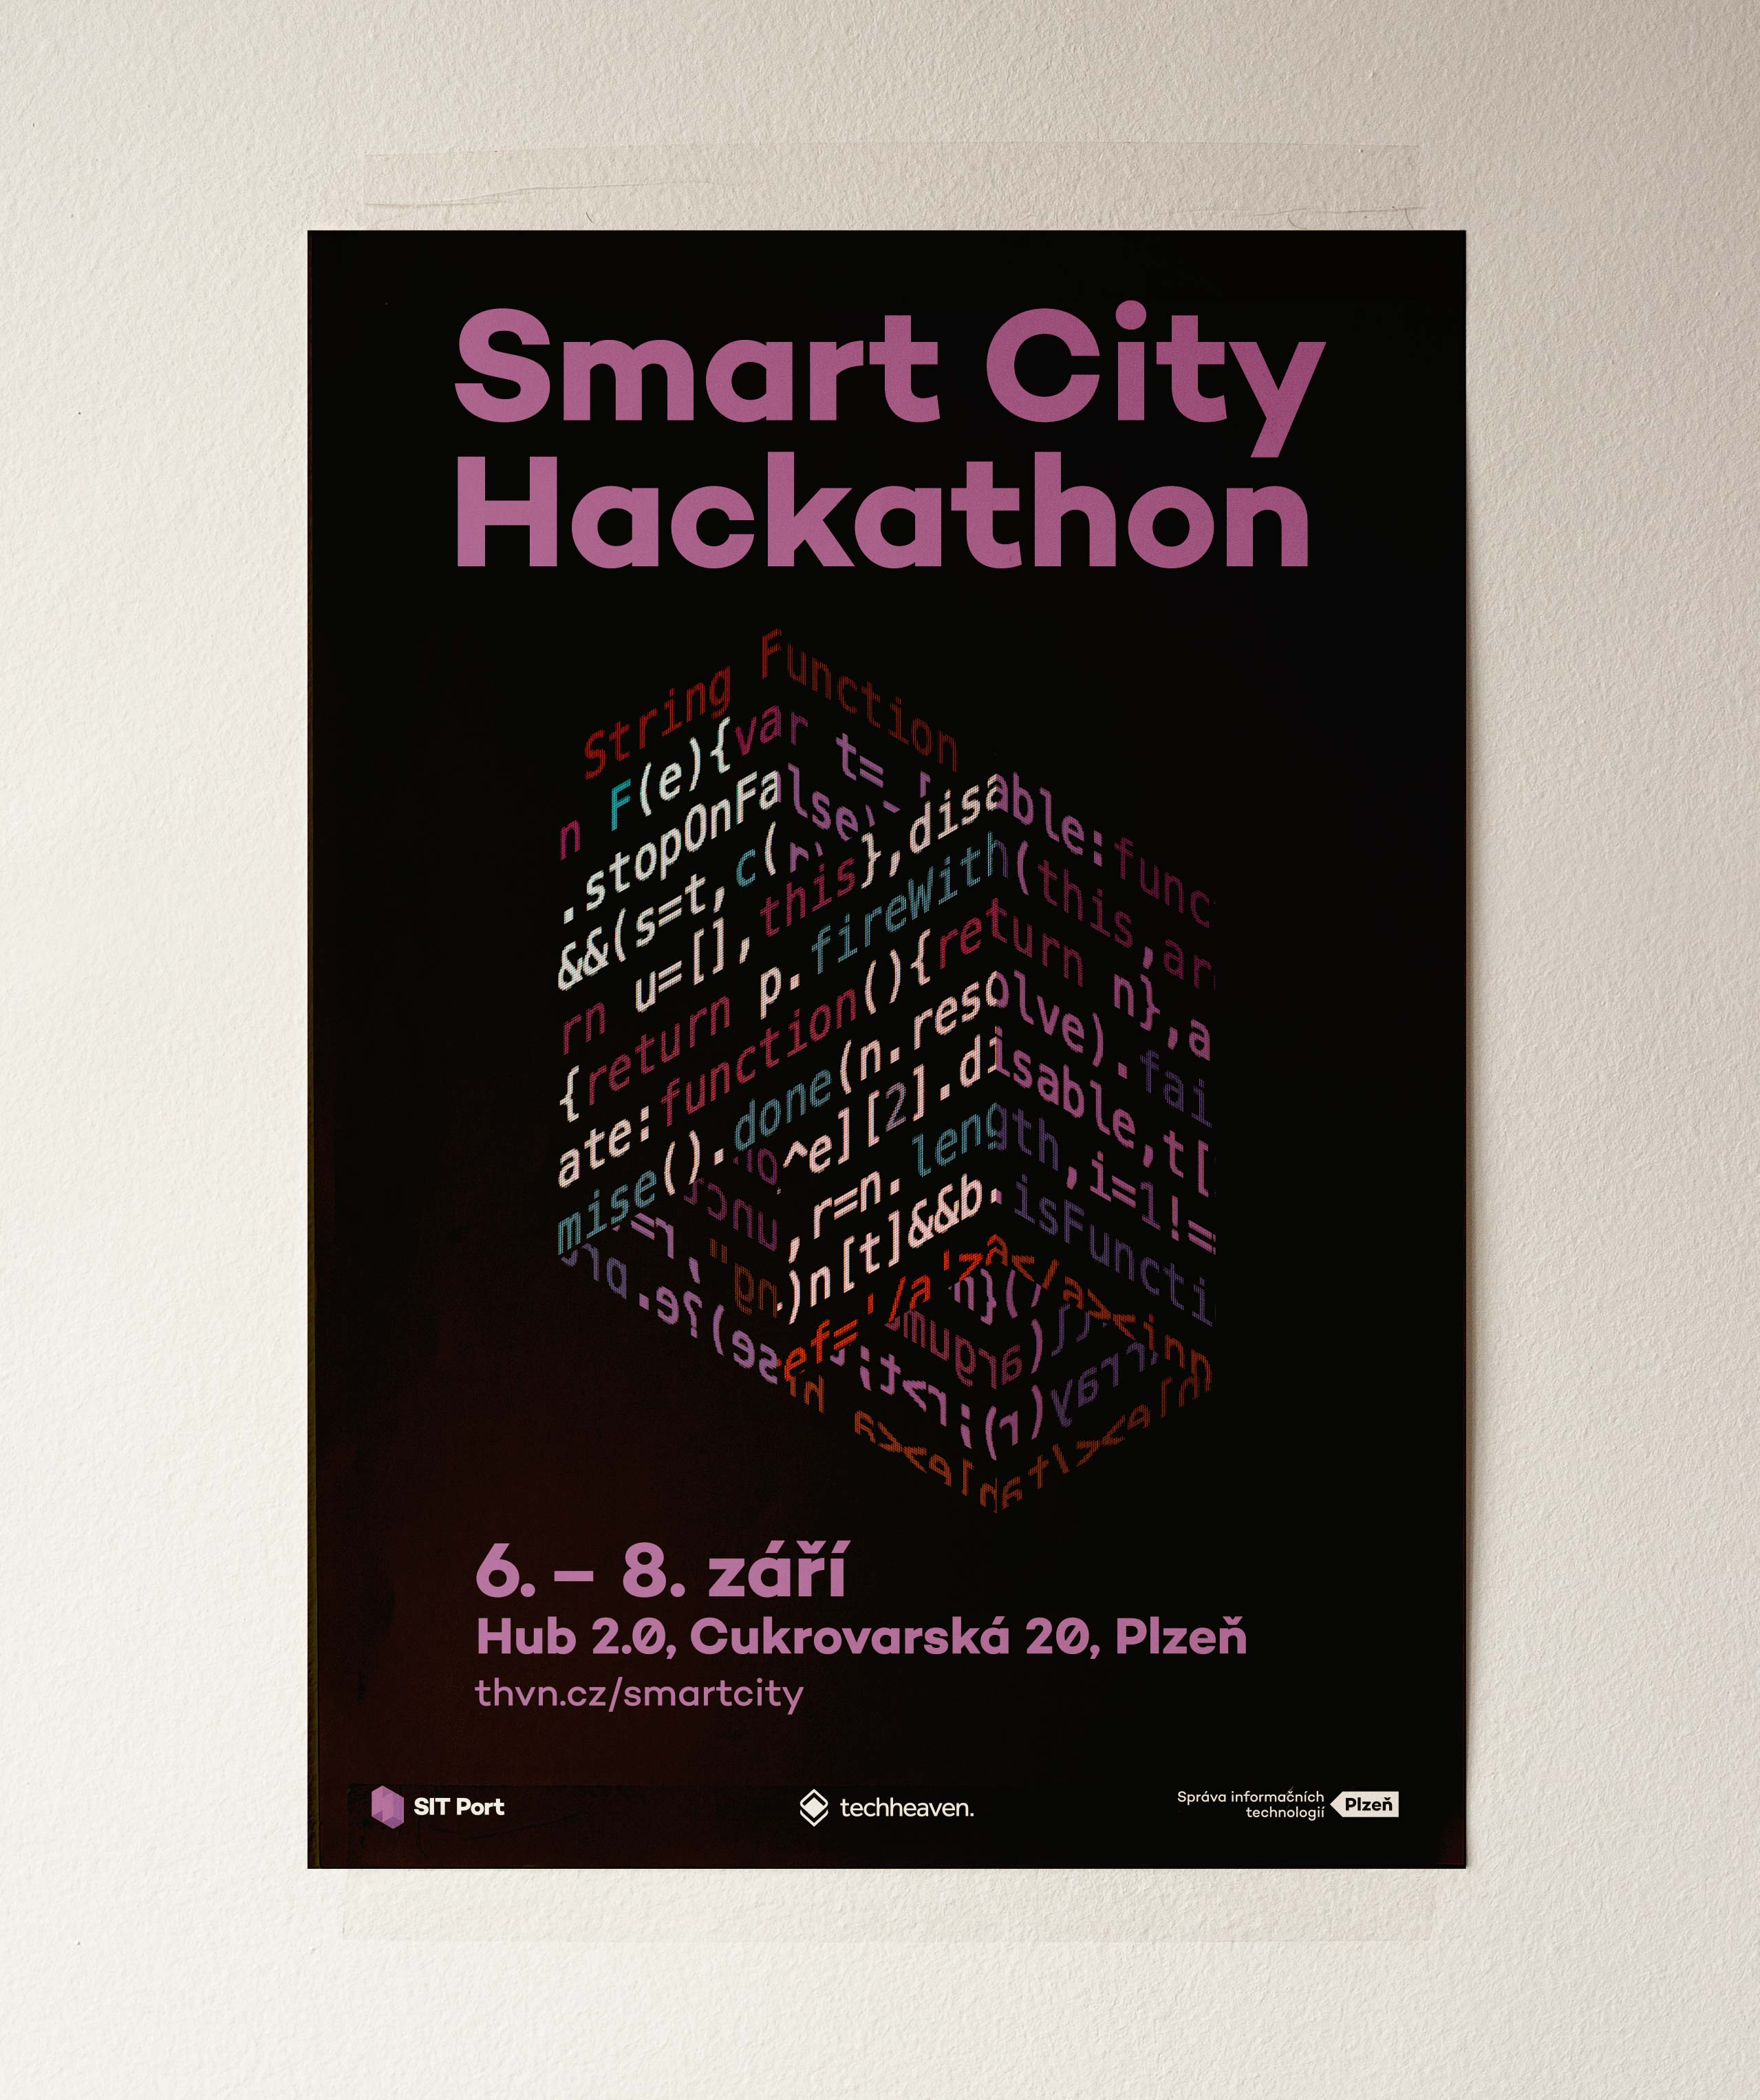 Smart City Hackathon designed by Dima